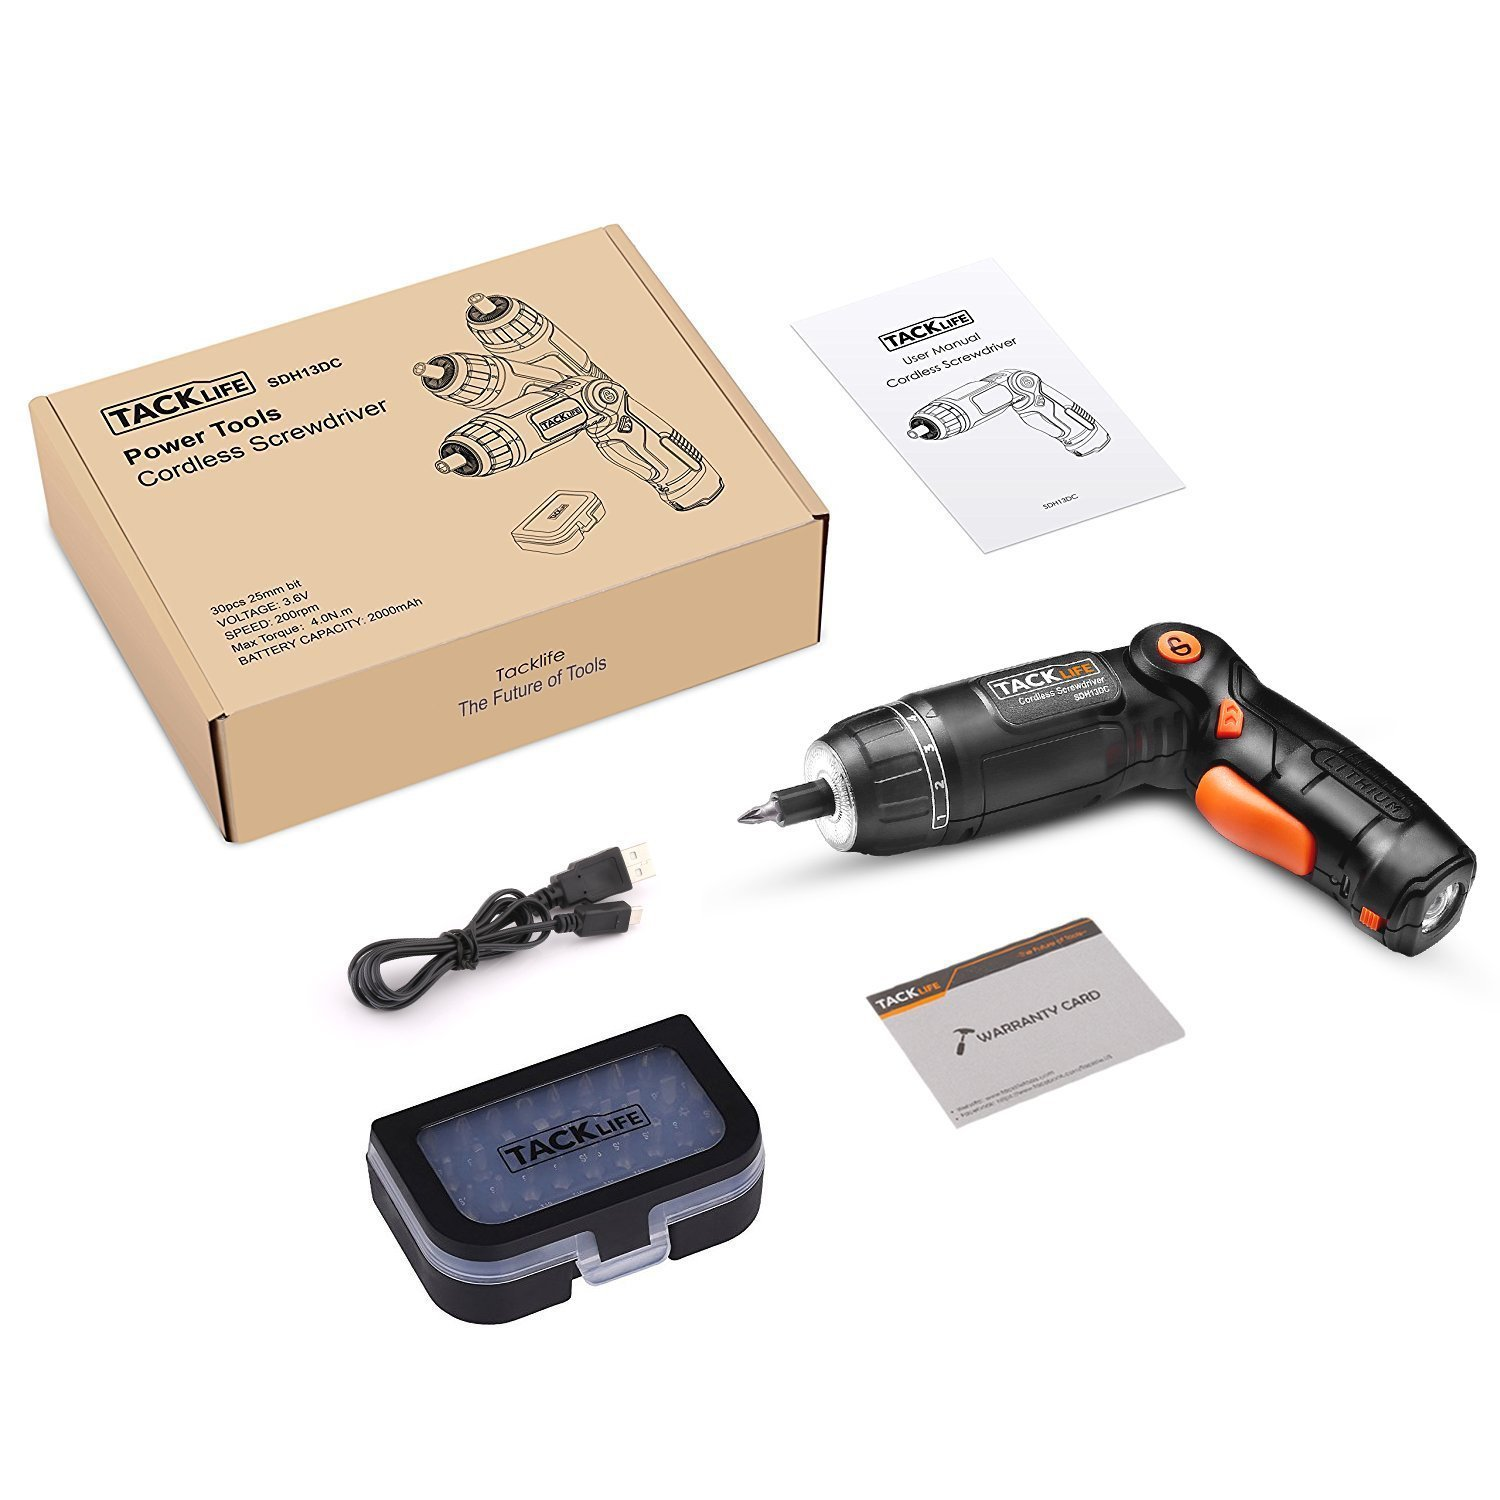 Tacklife SDH13DC Cordless Screwdriver 3.6-Volt 2000mAh MAX Torque 4N.m - 3-Position Rechargeable - 31 Screwdriver Bits in Case, 4 LED Light, Flashlight, USB Charging for Around House Small Jobs by TACKLIFE (Image #8)